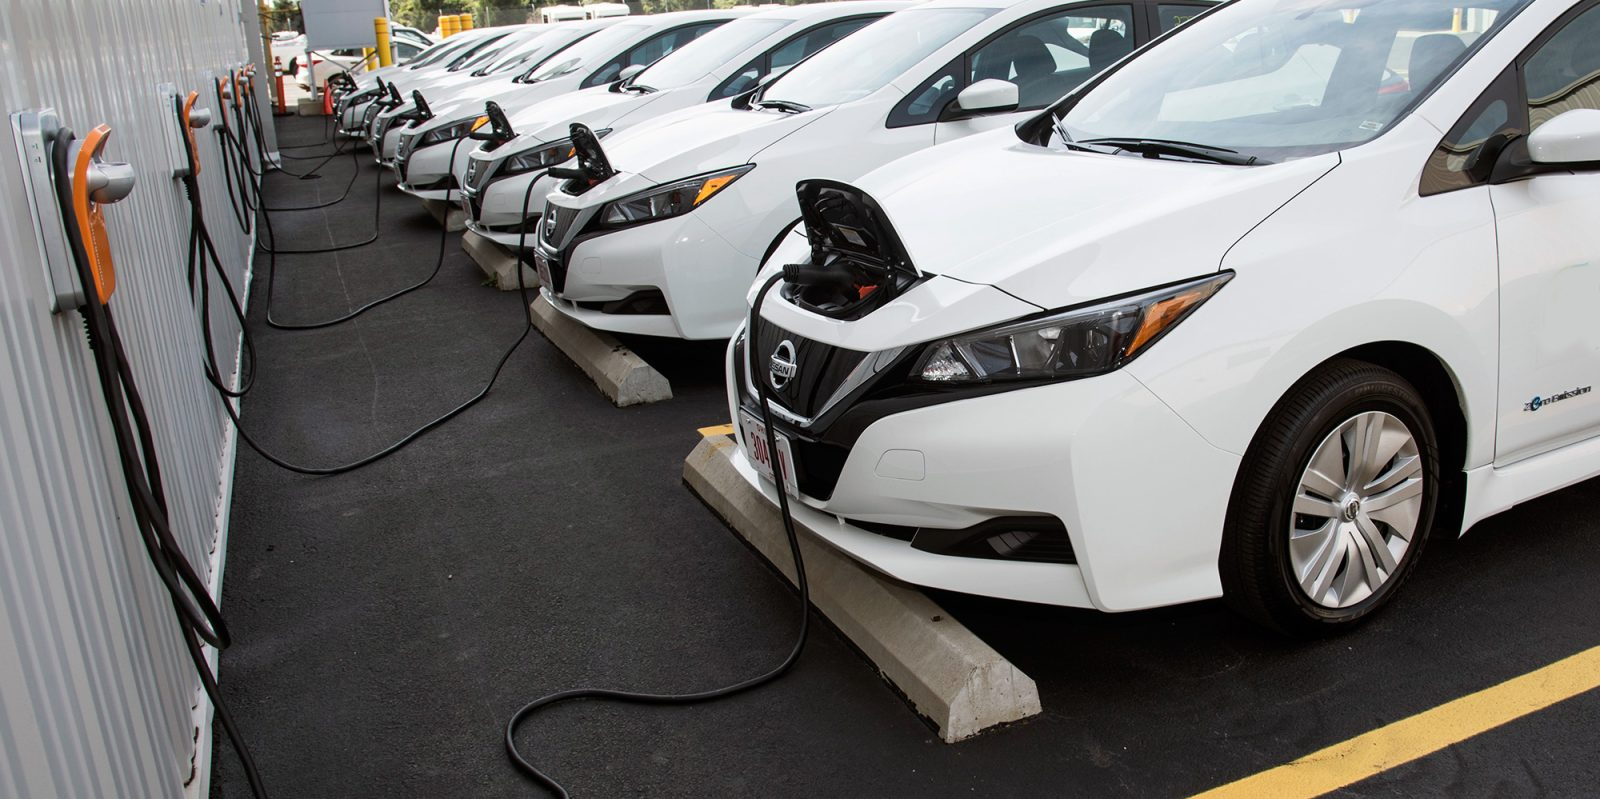 Want to buy the electric cars at affordable price